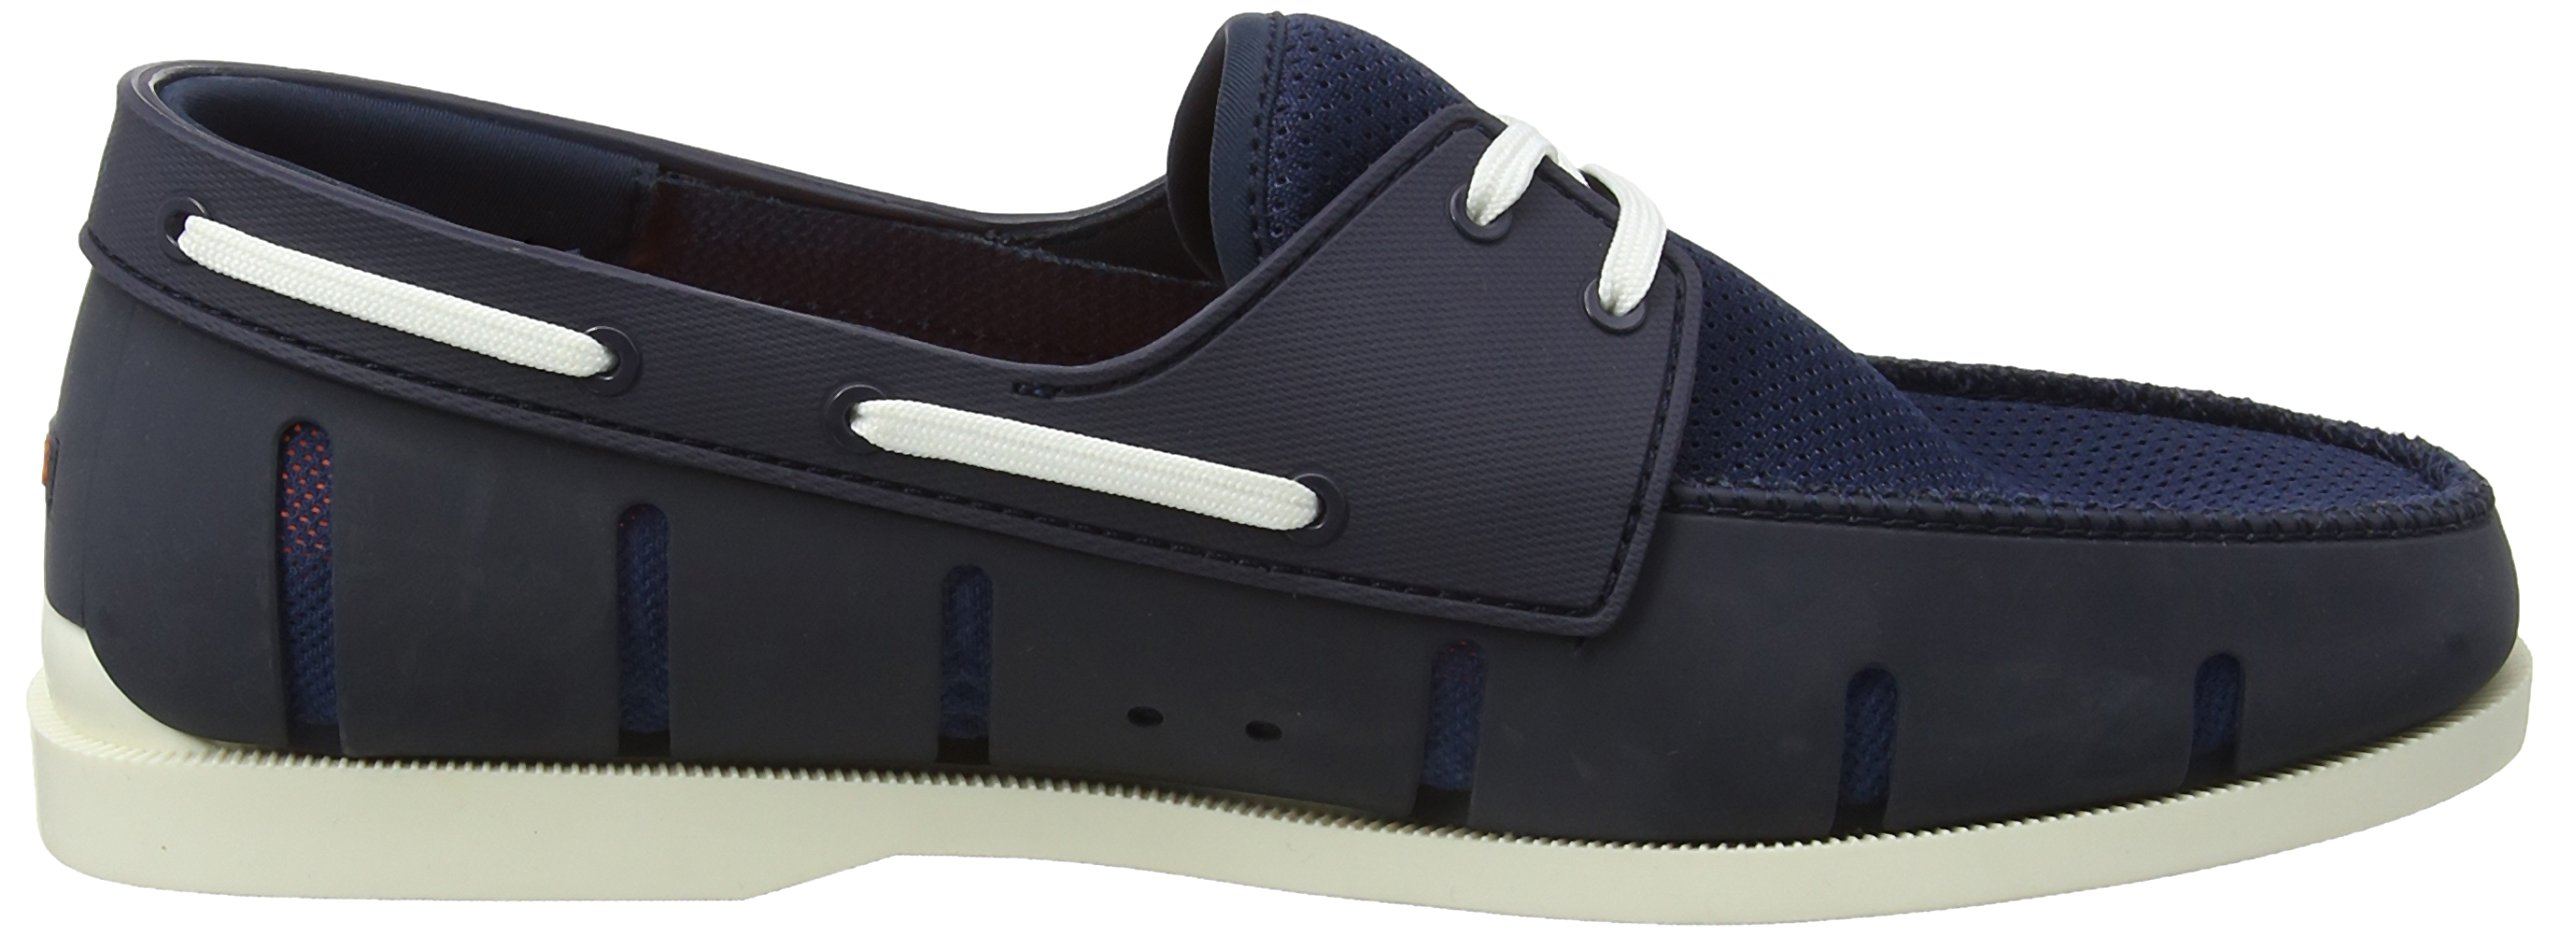 SWIMS Men's Boat Loafers, Navy/White, 7 D(M) US by SWIMS (Image #6)